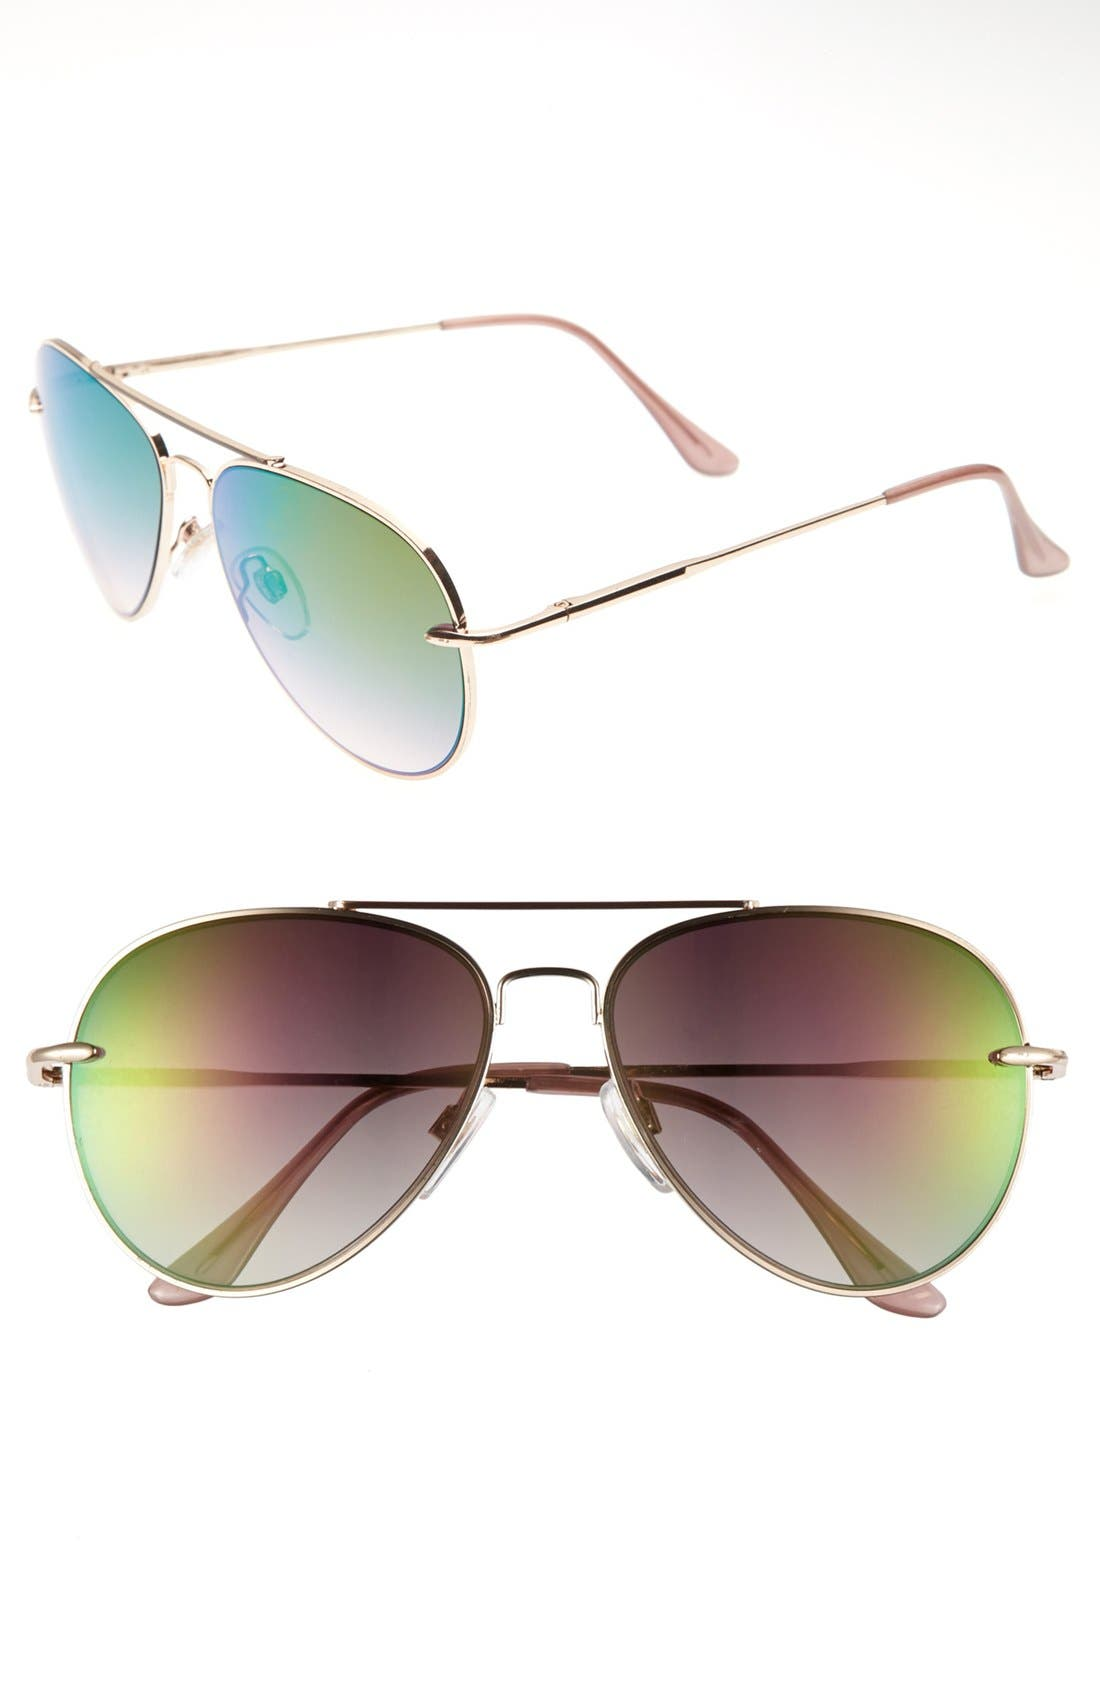 Alternate Image 1 Selected - Topshop 'The Collection Starring Kate Bosworth' Aviator Sunglasses